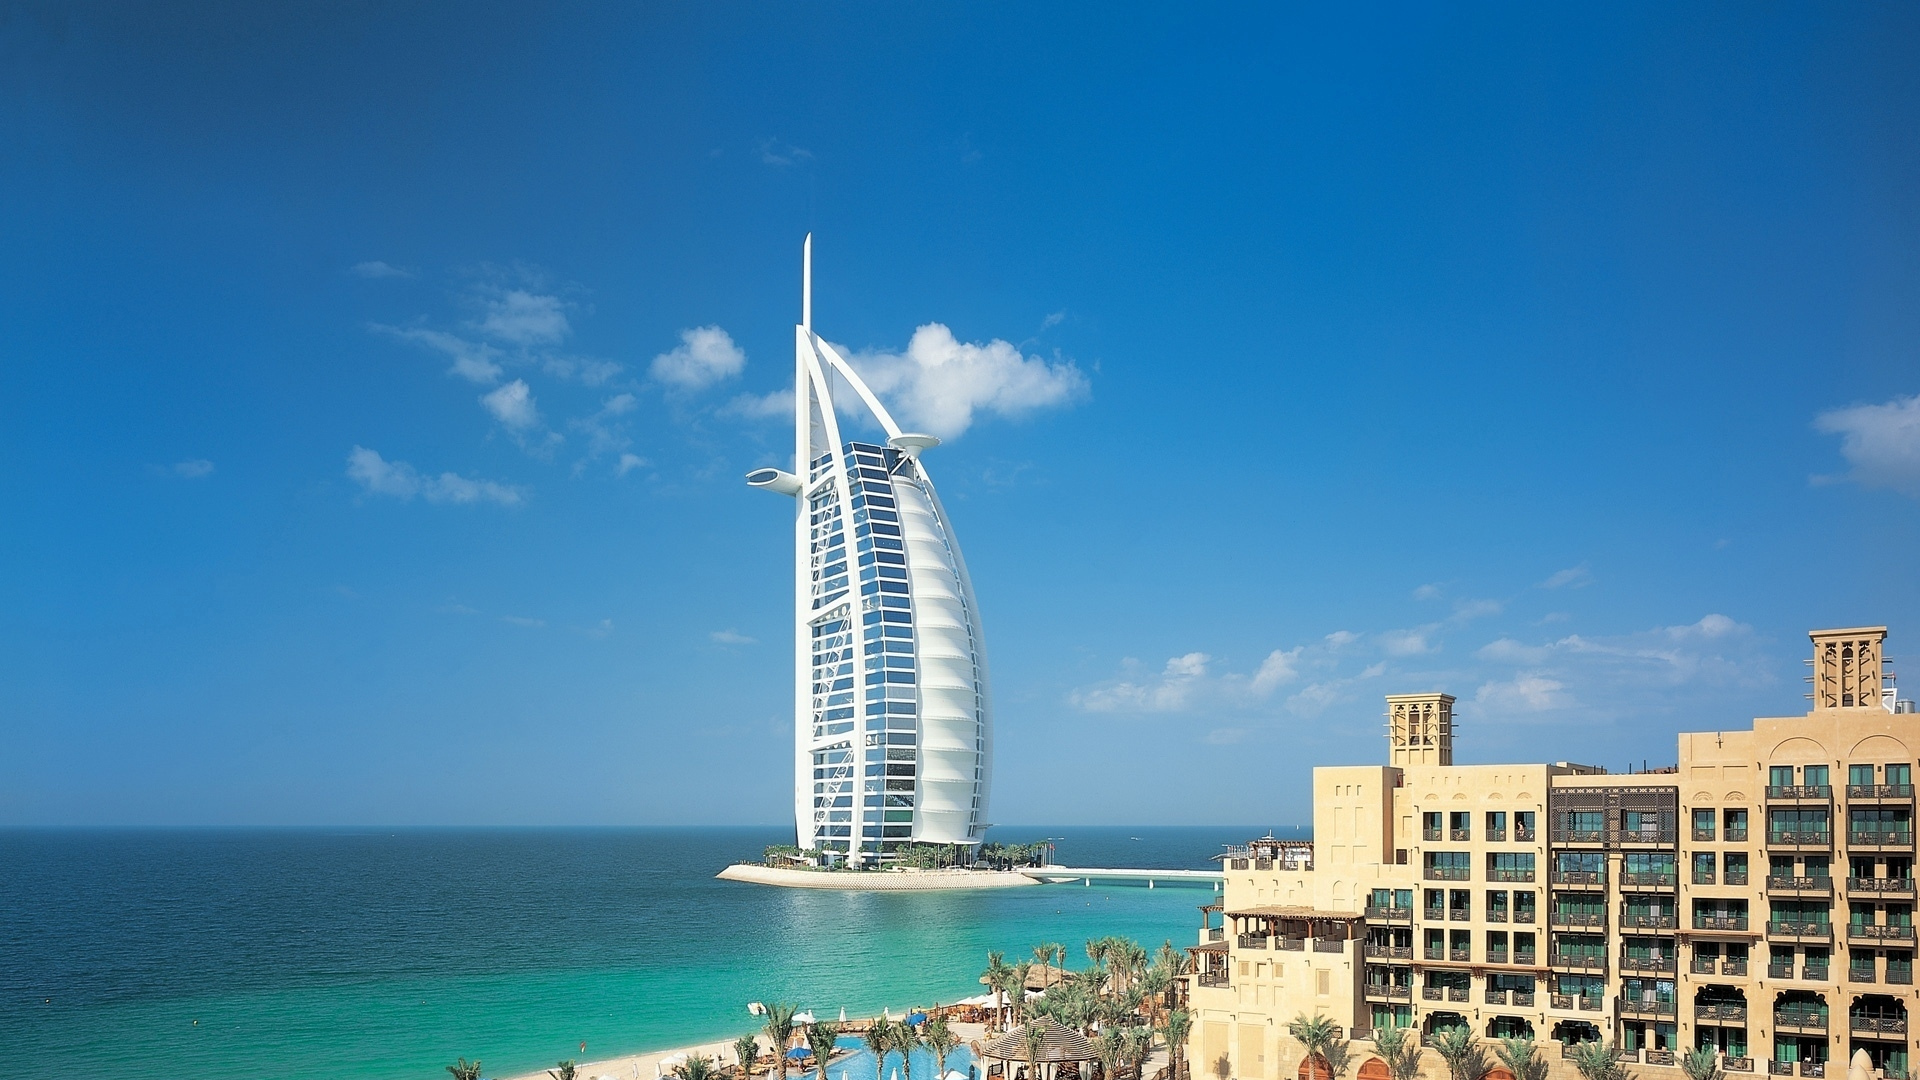 How Dubai plans to be the city with smallest ecological footprint by 2050